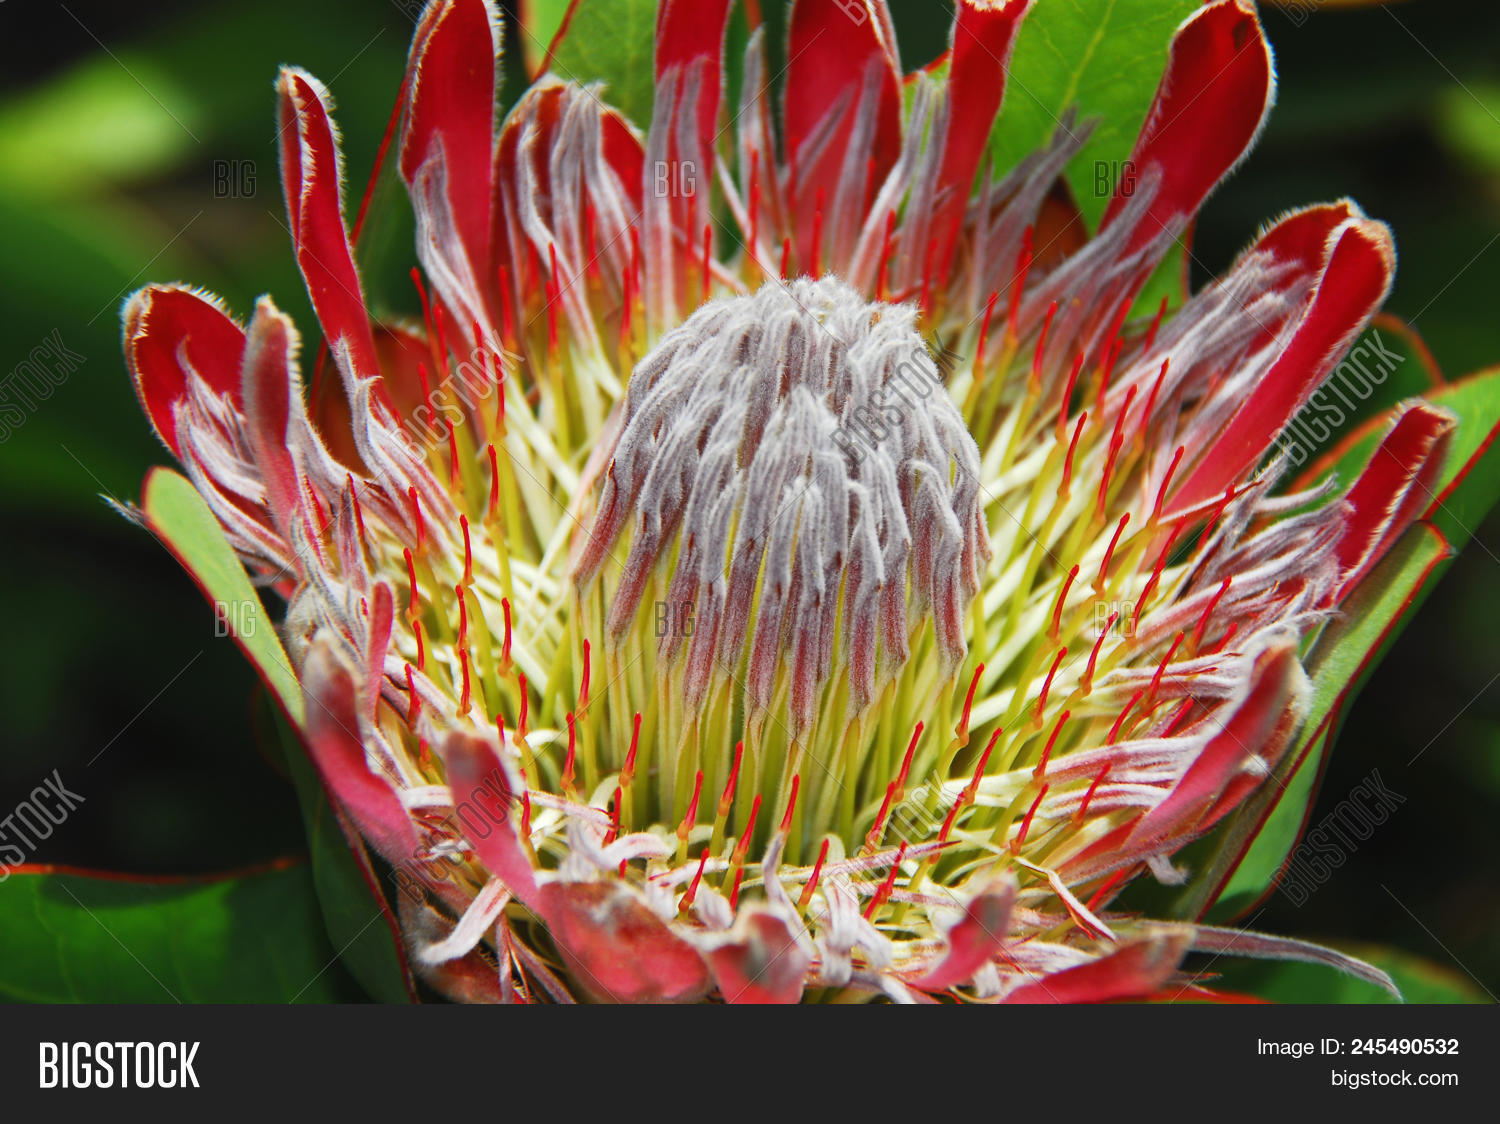 Protea fynbos rare image photo free trial bigstock protea fynbos are rare exotic large flowers native to south africa this beautiful bloom is izmirmasajfo